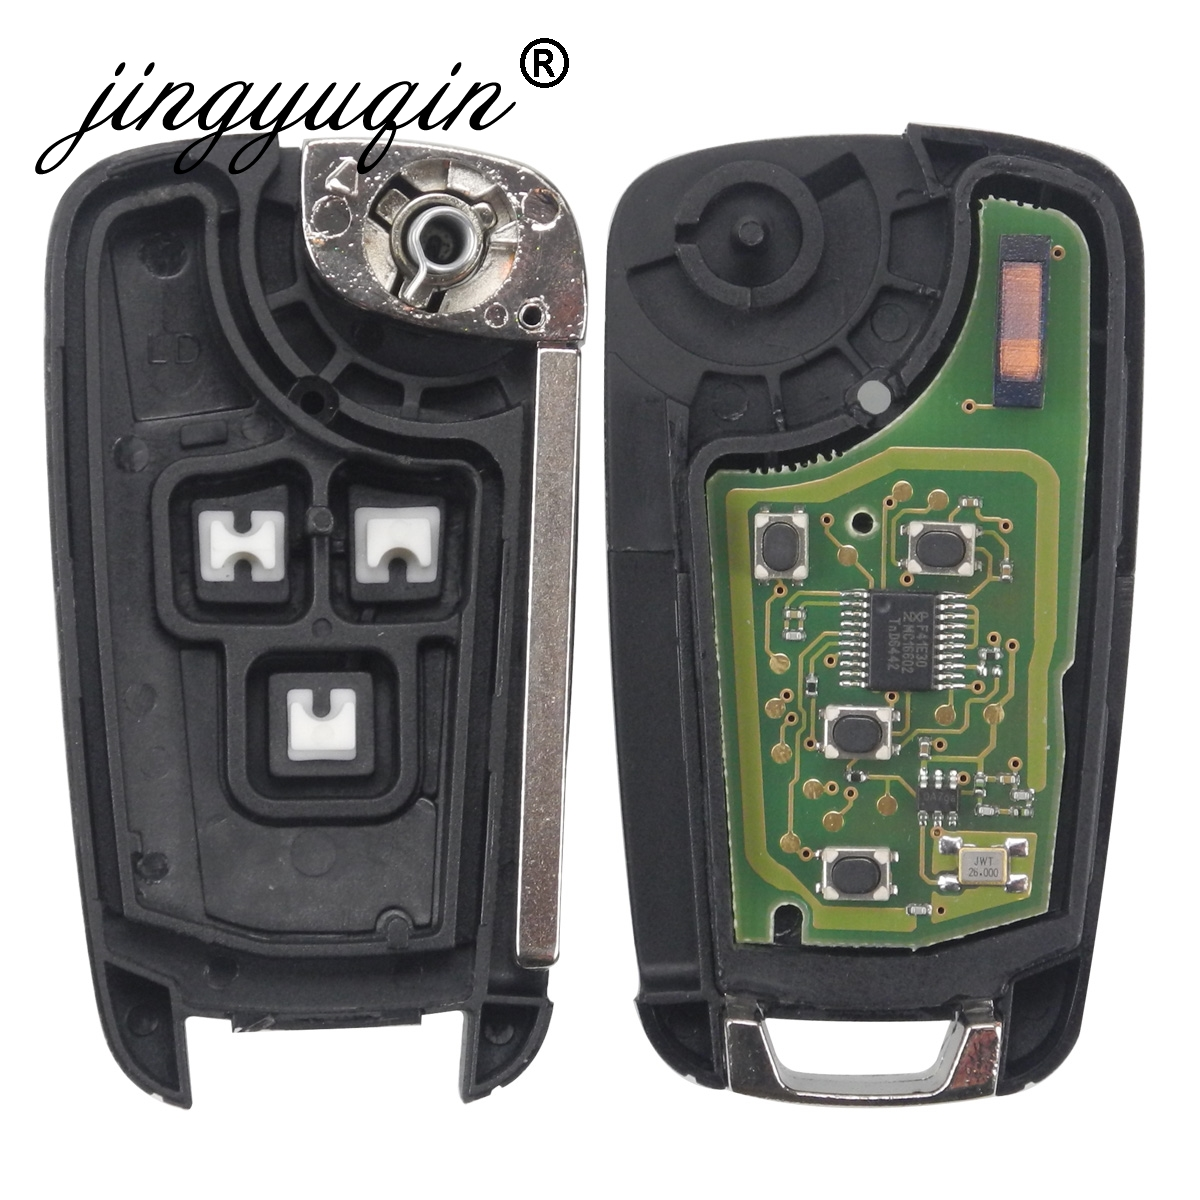 Image 4 - jingyuqin 2/3/4/5 Buttons Car Remote Key DIY for OPEL/VAUXHALL Astra J Corsa E Insignia Zafira C 2009 2016 315 / 433MHz PCF7937E-in Car Key from Automobiles & Motorcycles